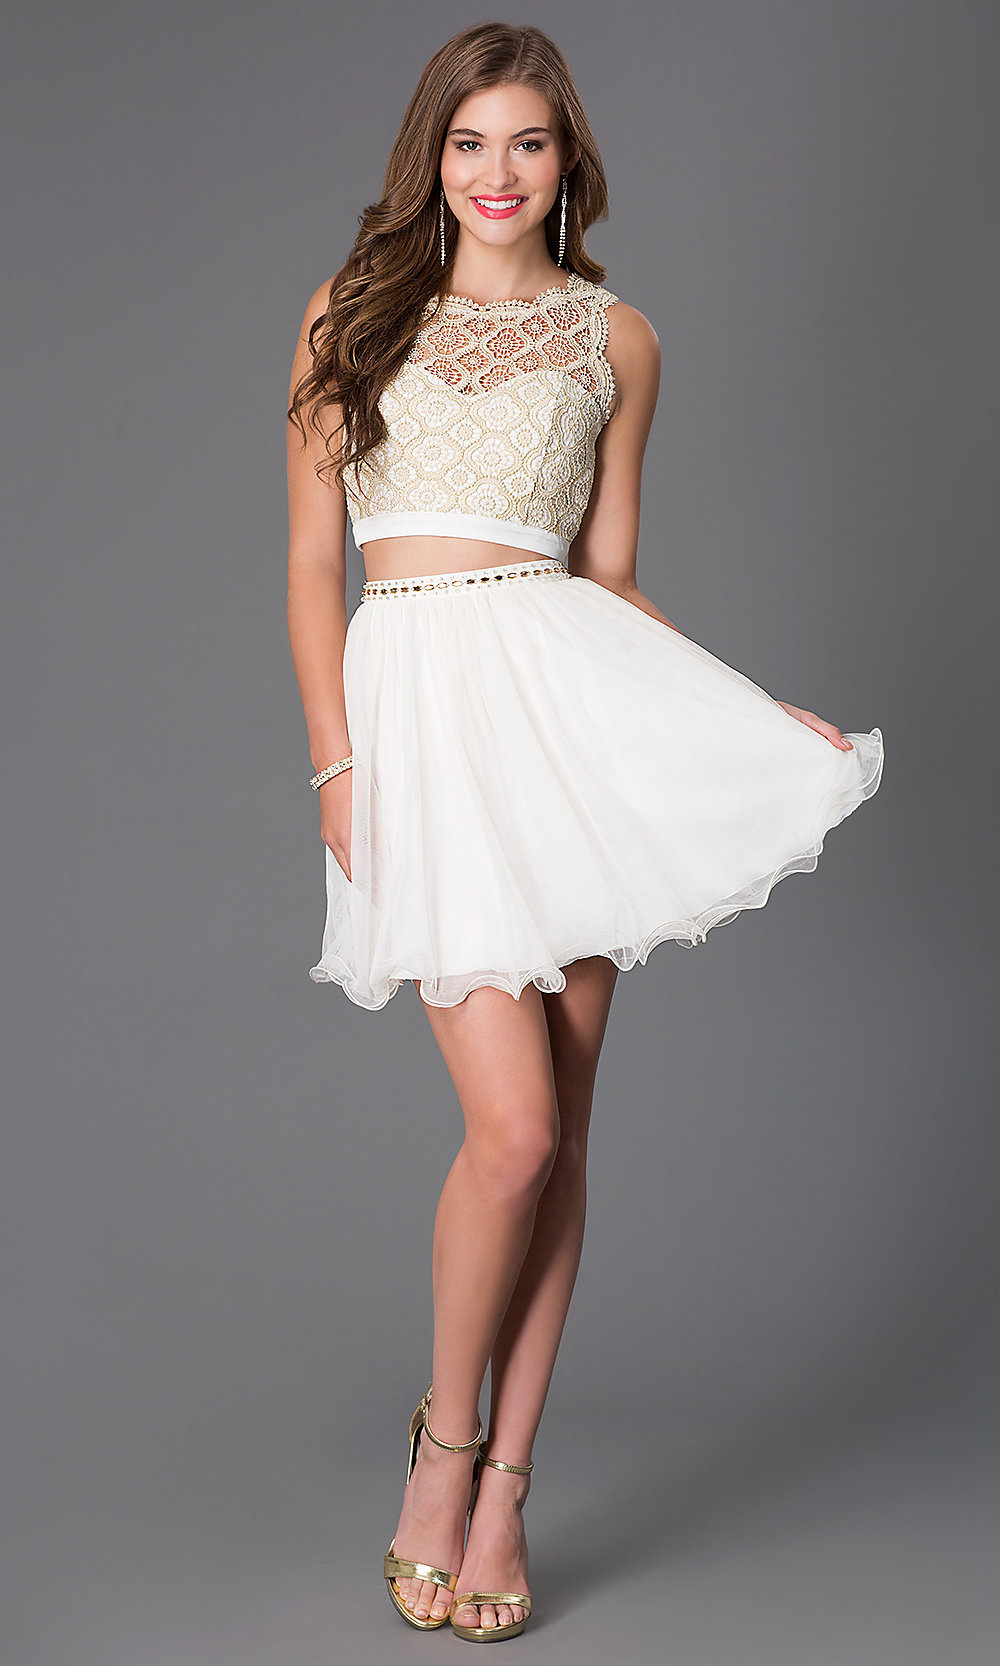 Wedding Ivory Dress ivory two piece lace dress promgirl hover to zoom